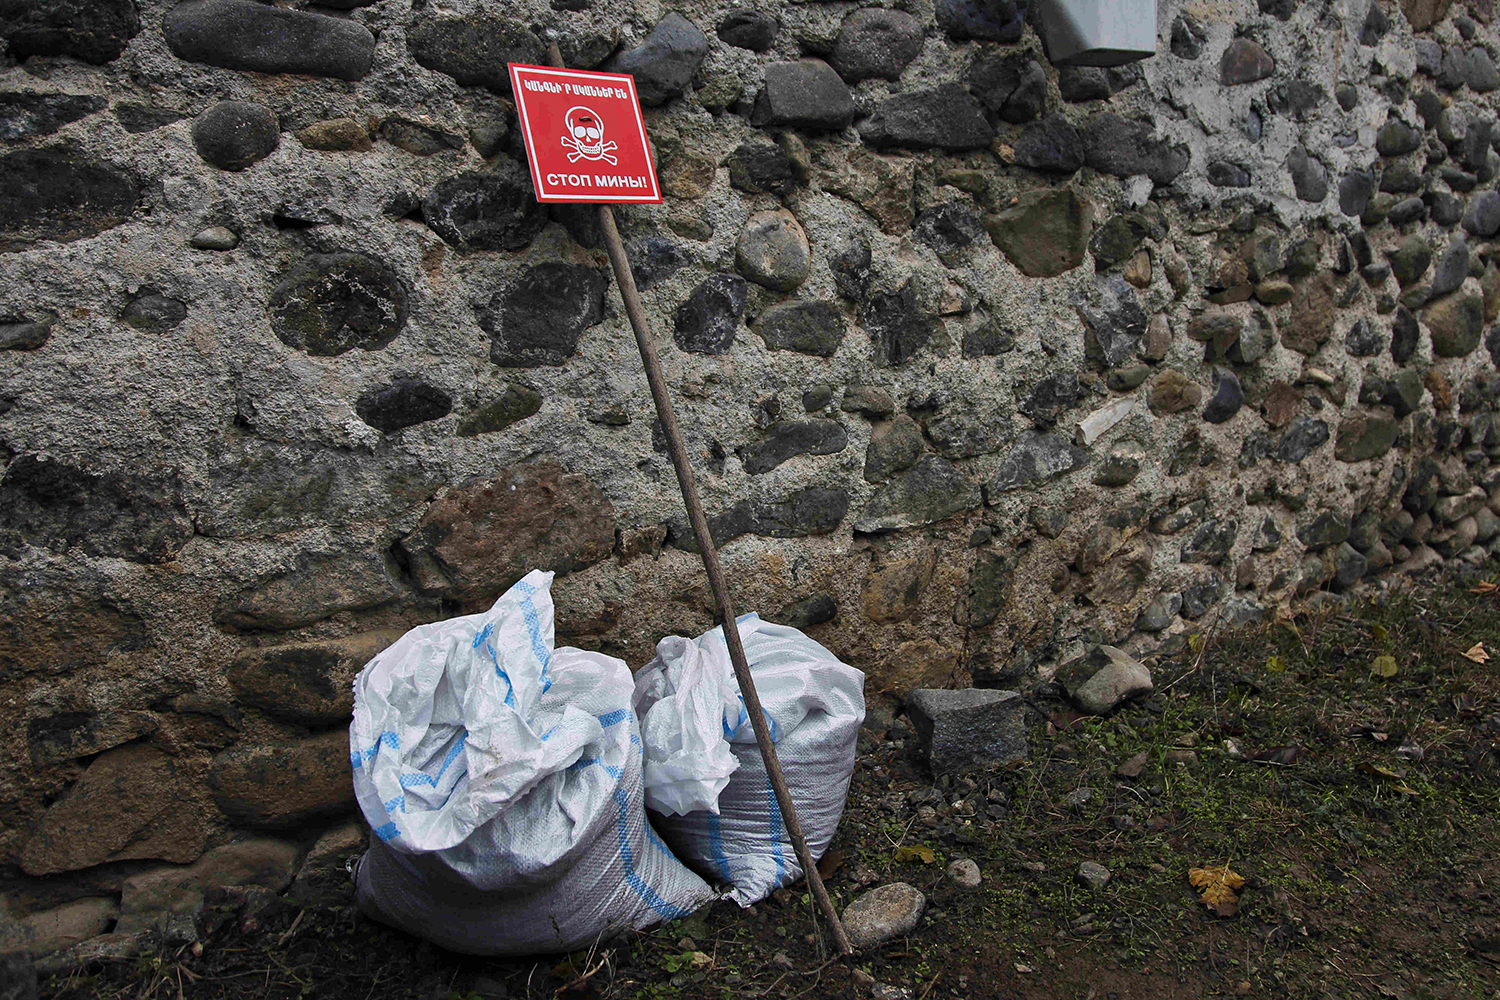 "A skull-and-crossbones sign saying ""Stop Mines"" is placed next to sandbags encasing an unexploded cannon round in the the village of Aygestan on Dec. 3, 2020."